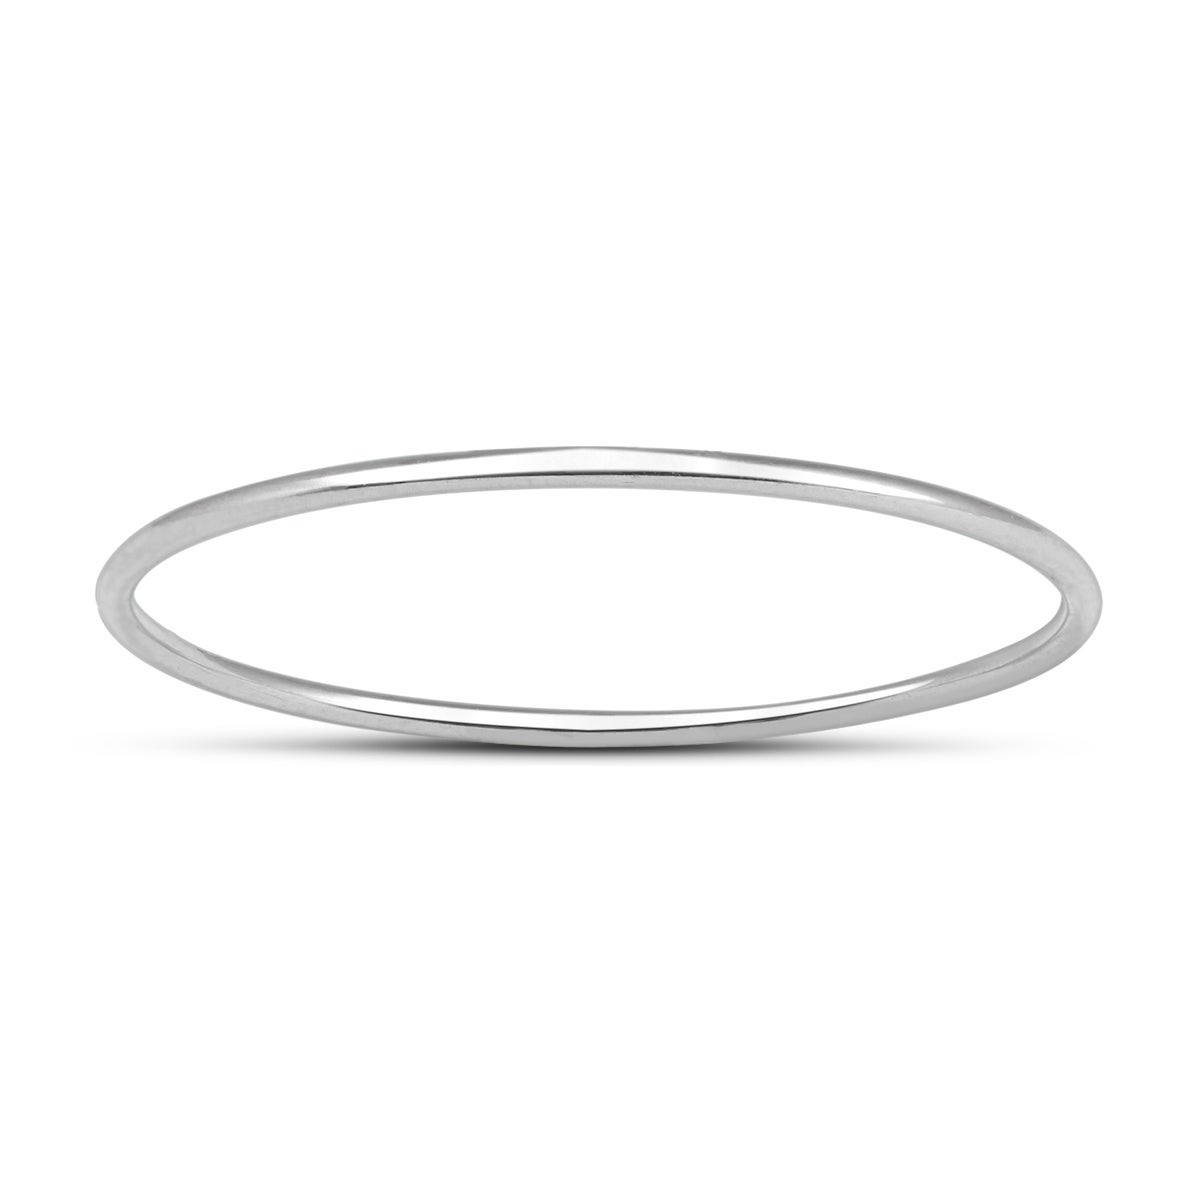 14K White Gold 1mm Thin Domed Wedding Band Ring